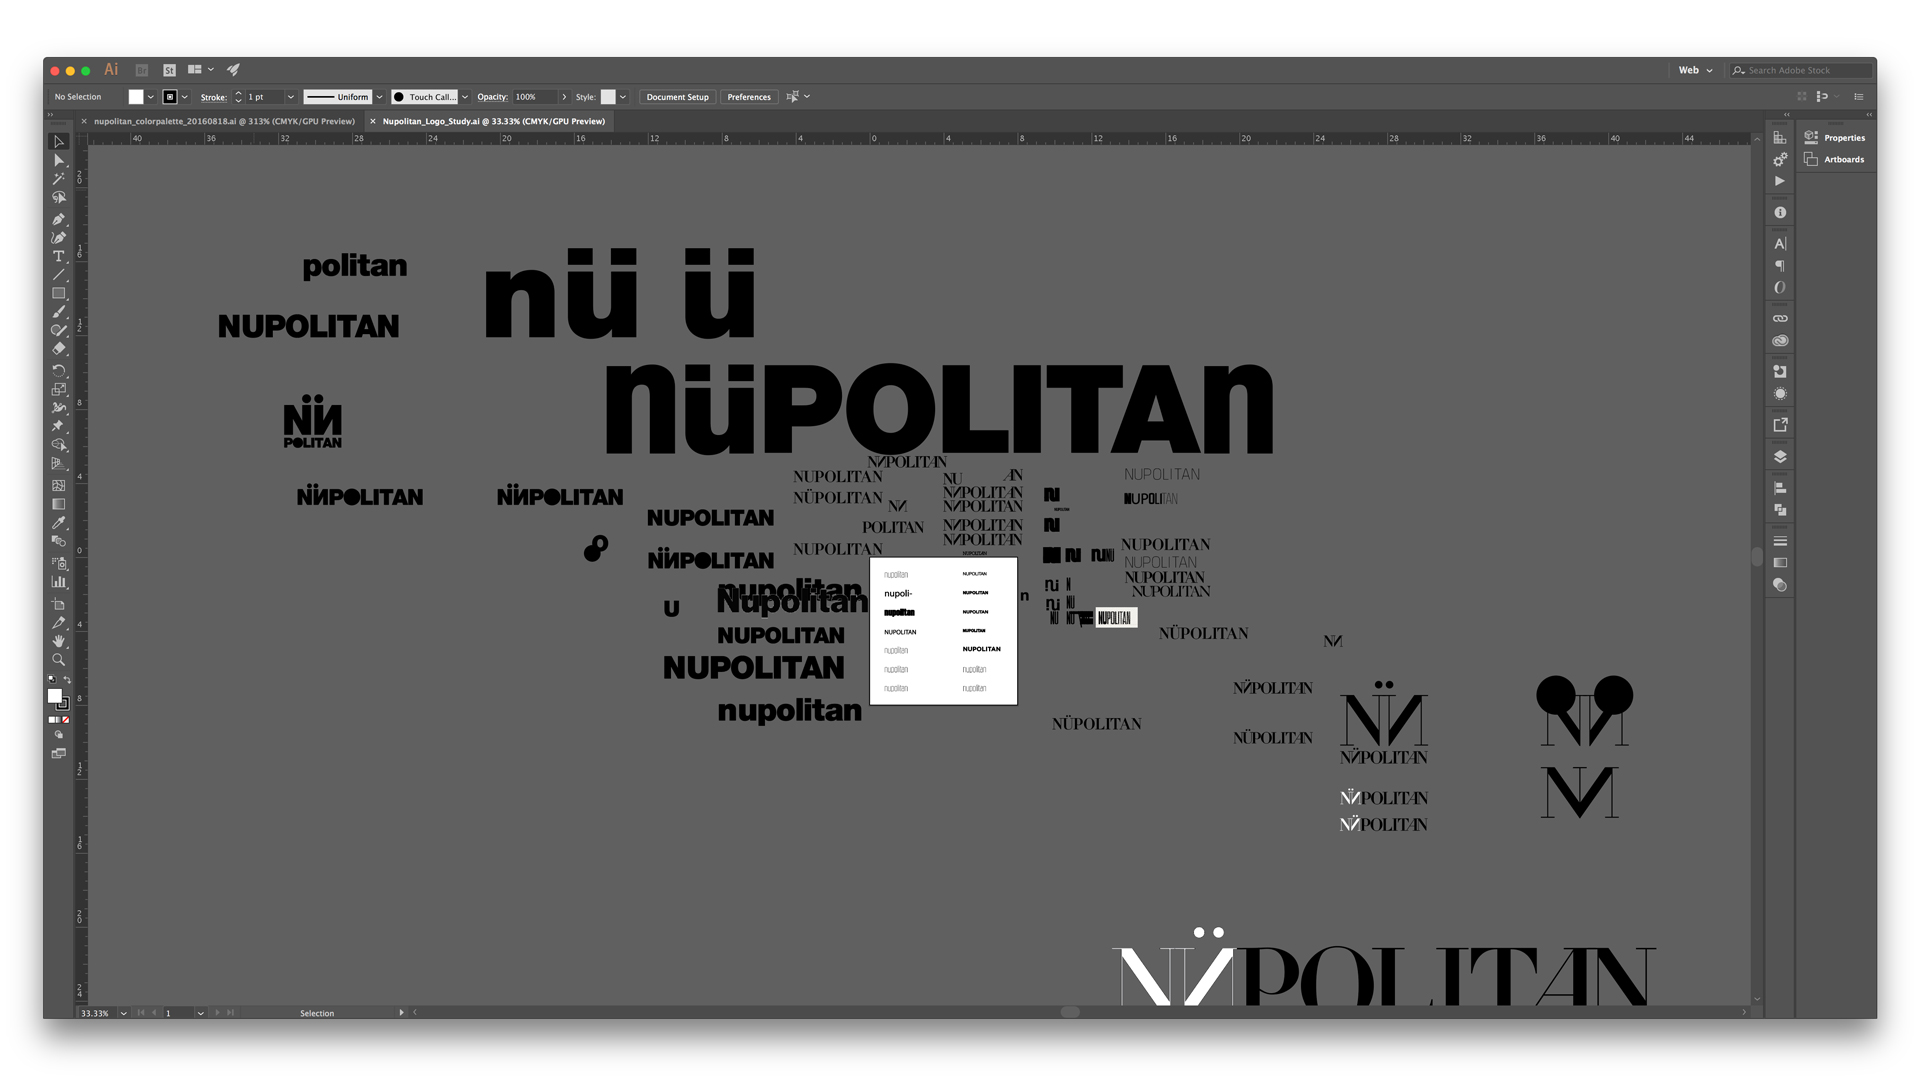 Screen capture of Illustrator window with iterations of Nüpolitan logo